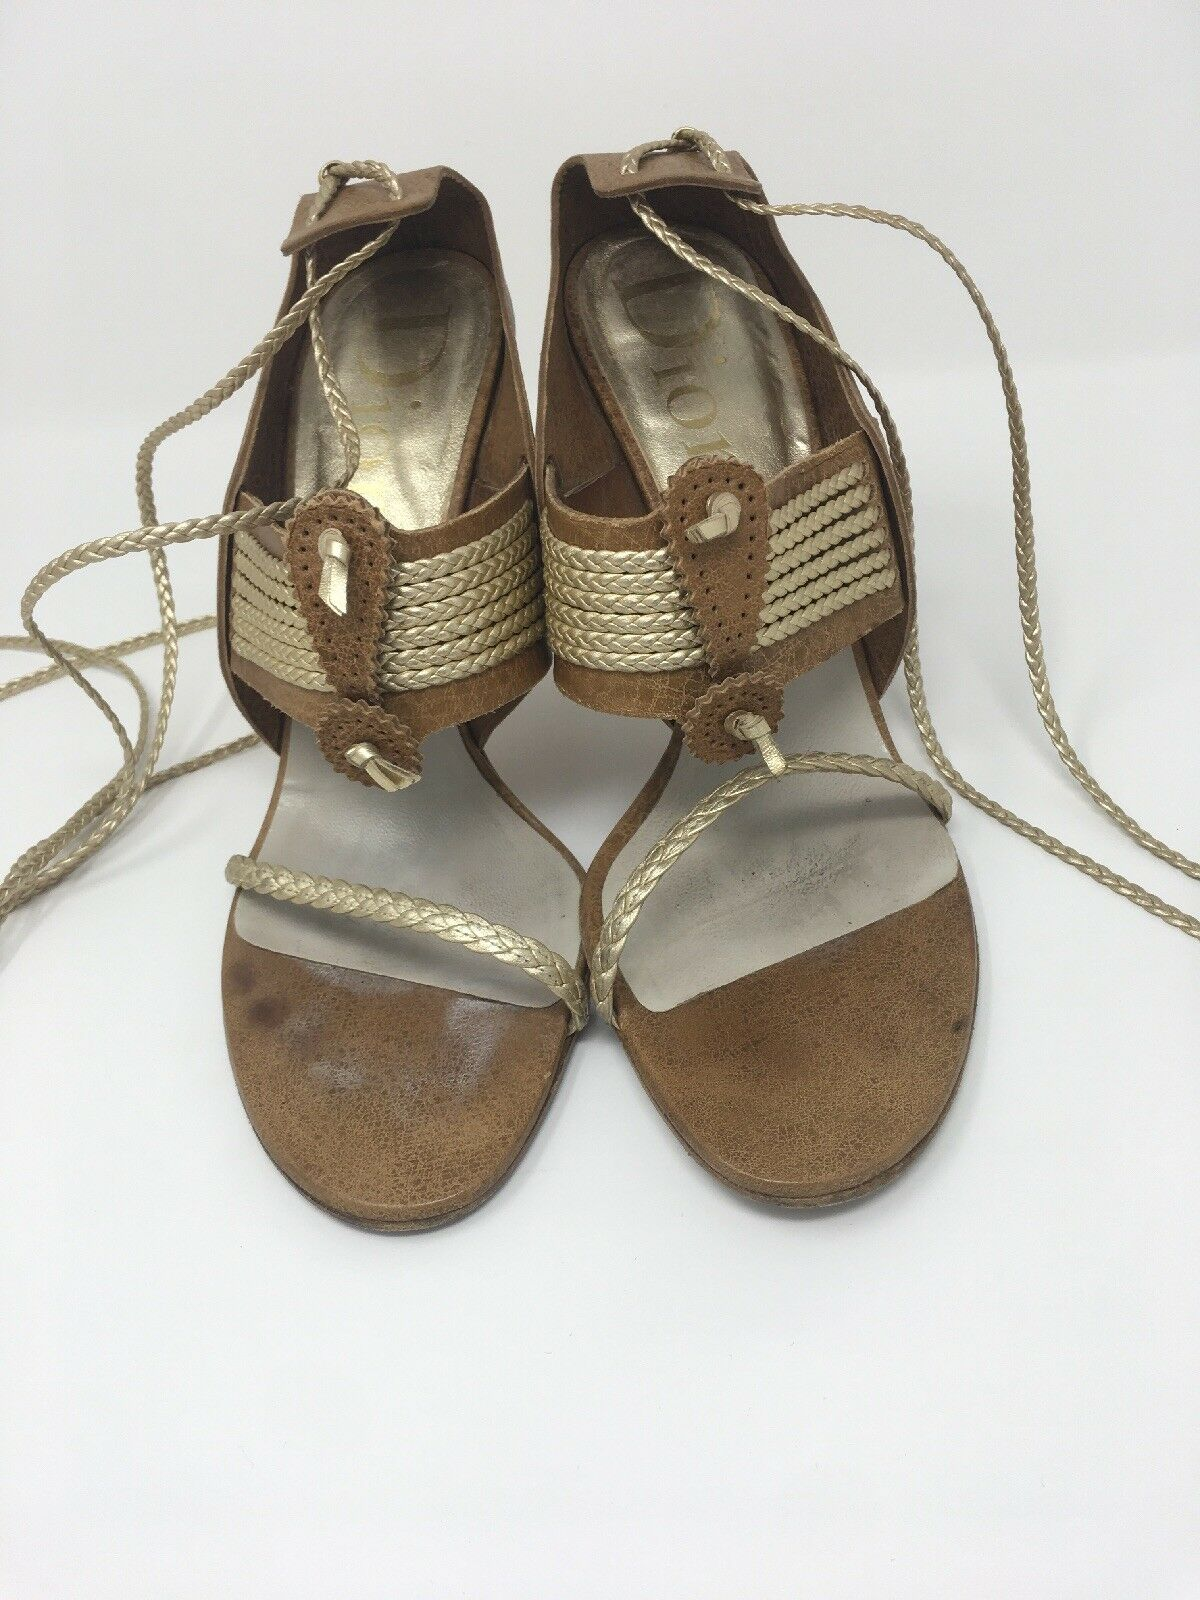 Dior shoes Camel And gold Size 39